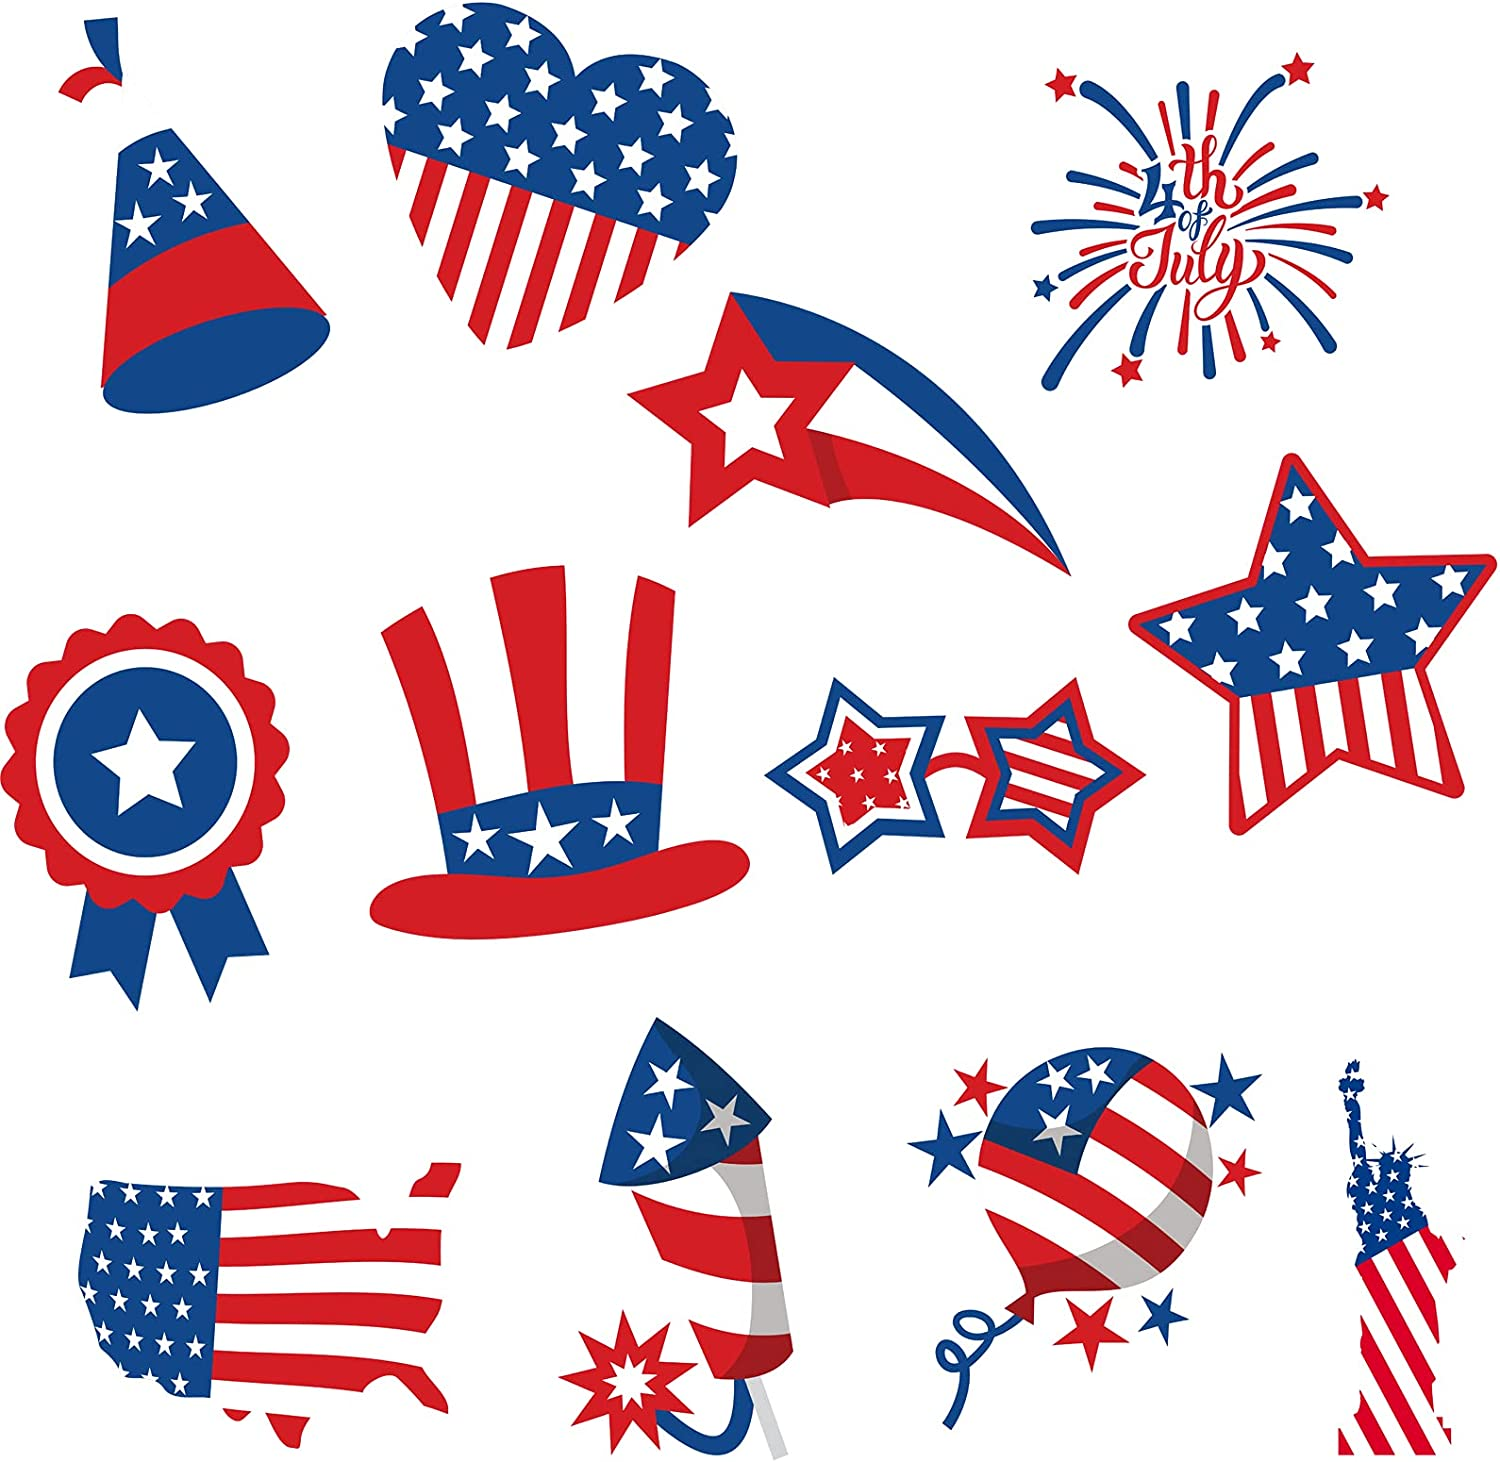 Whaline 48Pcs 4th of July Cut-Outs Patriotic American Flag Cut Outs with 100pcs Glue Points Cartoon Stars Stripes Heart Firework Paper Cut-Outs for Independence Day Classroom Bulletin Board Decor